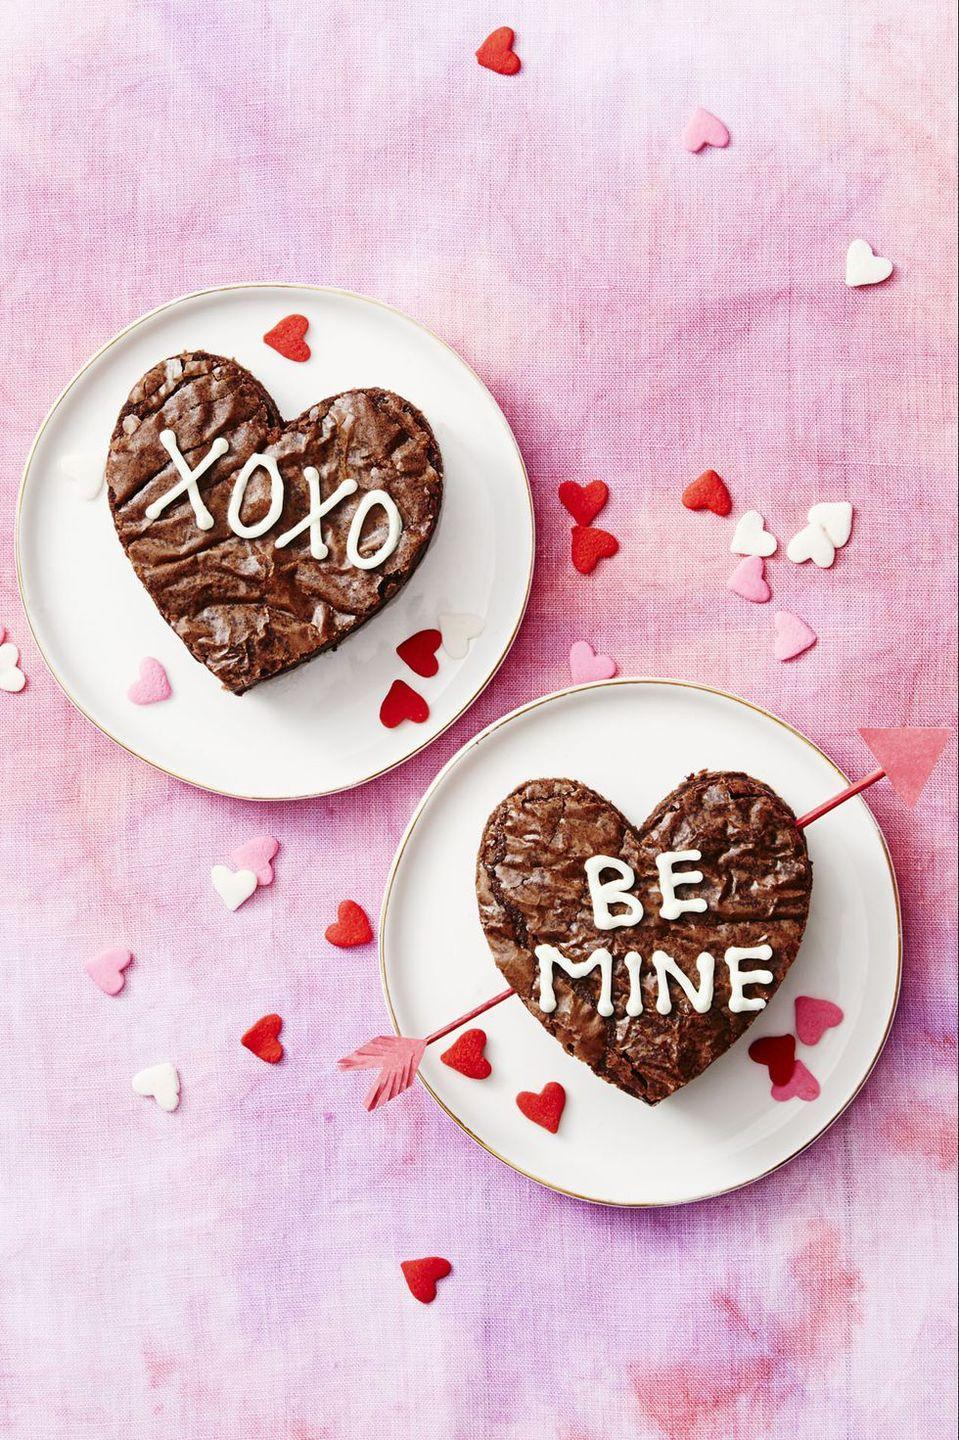 """<p>The quicker it bakes, the better it tastes (well, for these fudgy brownies at least).</p><p><em>Get the recipe for Valentine's Day Brownies »</em></p><p><strong>RELATED: </strong><a href=""""https://www.goodhousekeeping.com/food-products/g319/brownie-mix-taste-test/"""" rel=""""nofollow noopener"""" target=""""_blank"""" data-ylk=""""slk:10 Best Brownie Mixes to Try Now, According to Our Taste Test"""" class=""""link rapid-noclick-resp"""">10 Best Brownie Mixes to Try Now, According to Our Taste Test</a><br></p>"""